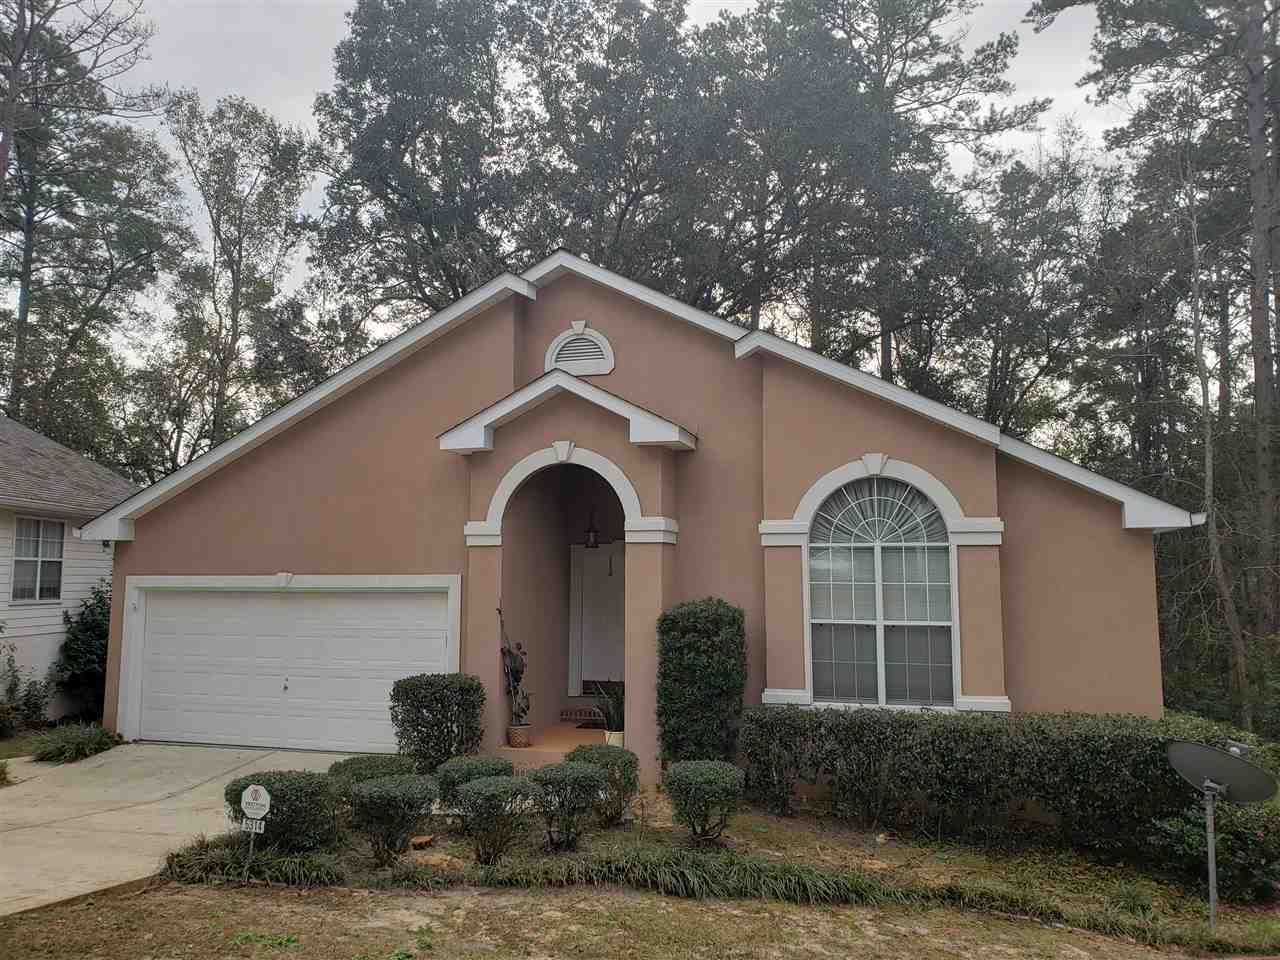 Photo for 5314 Saint Ives Lane, TALLAHASSEE, FL 32309 (MLS # 326018)